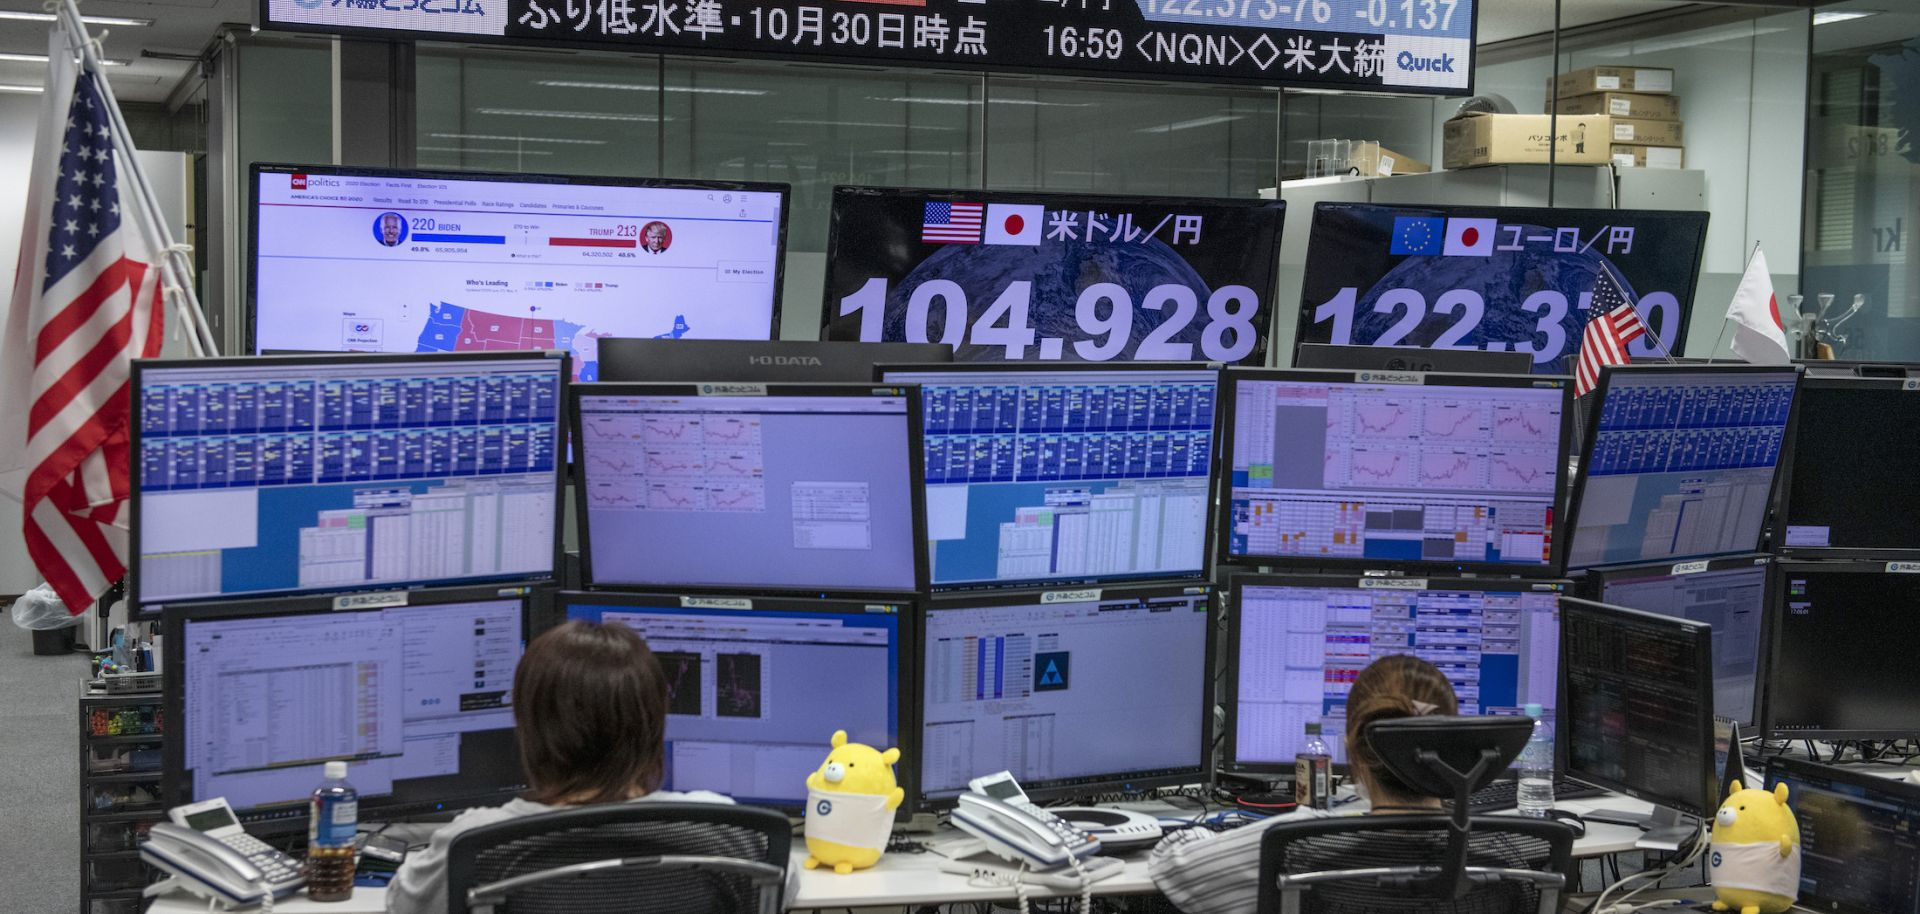 Foreign exchange traders in Tokyo, Japan, monitor screens broadcasting results from the U.S. presidential election on Nov. 4, 2020.